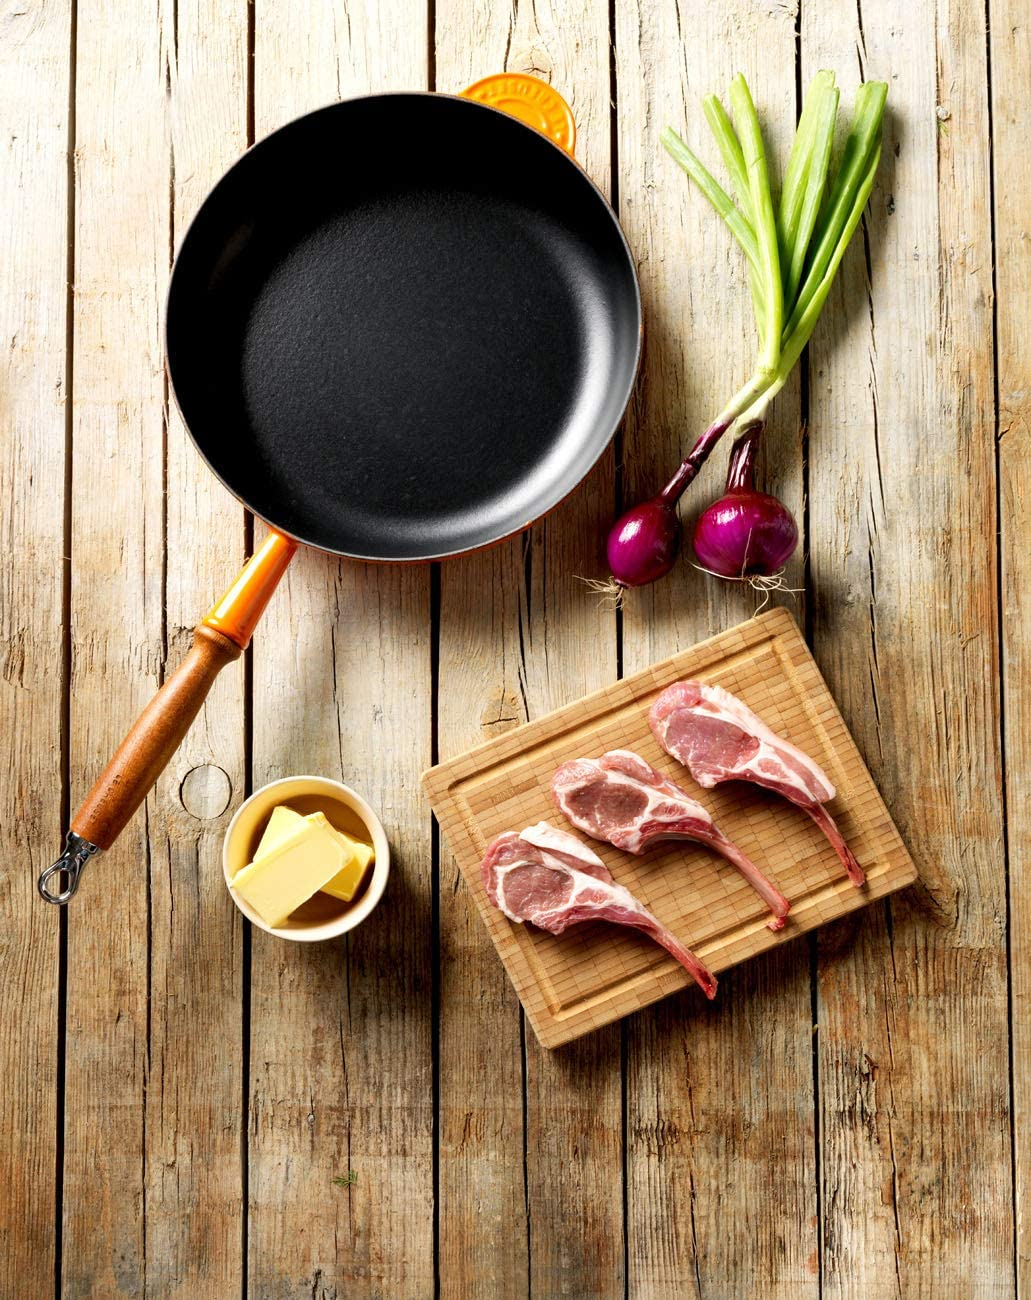 Le Creuset Signature Cast Iron Saut/é Pan With Large Frying Area and Cool-Touch Wooden Handle 28 cm Satin Black For All Hob Types 200592800